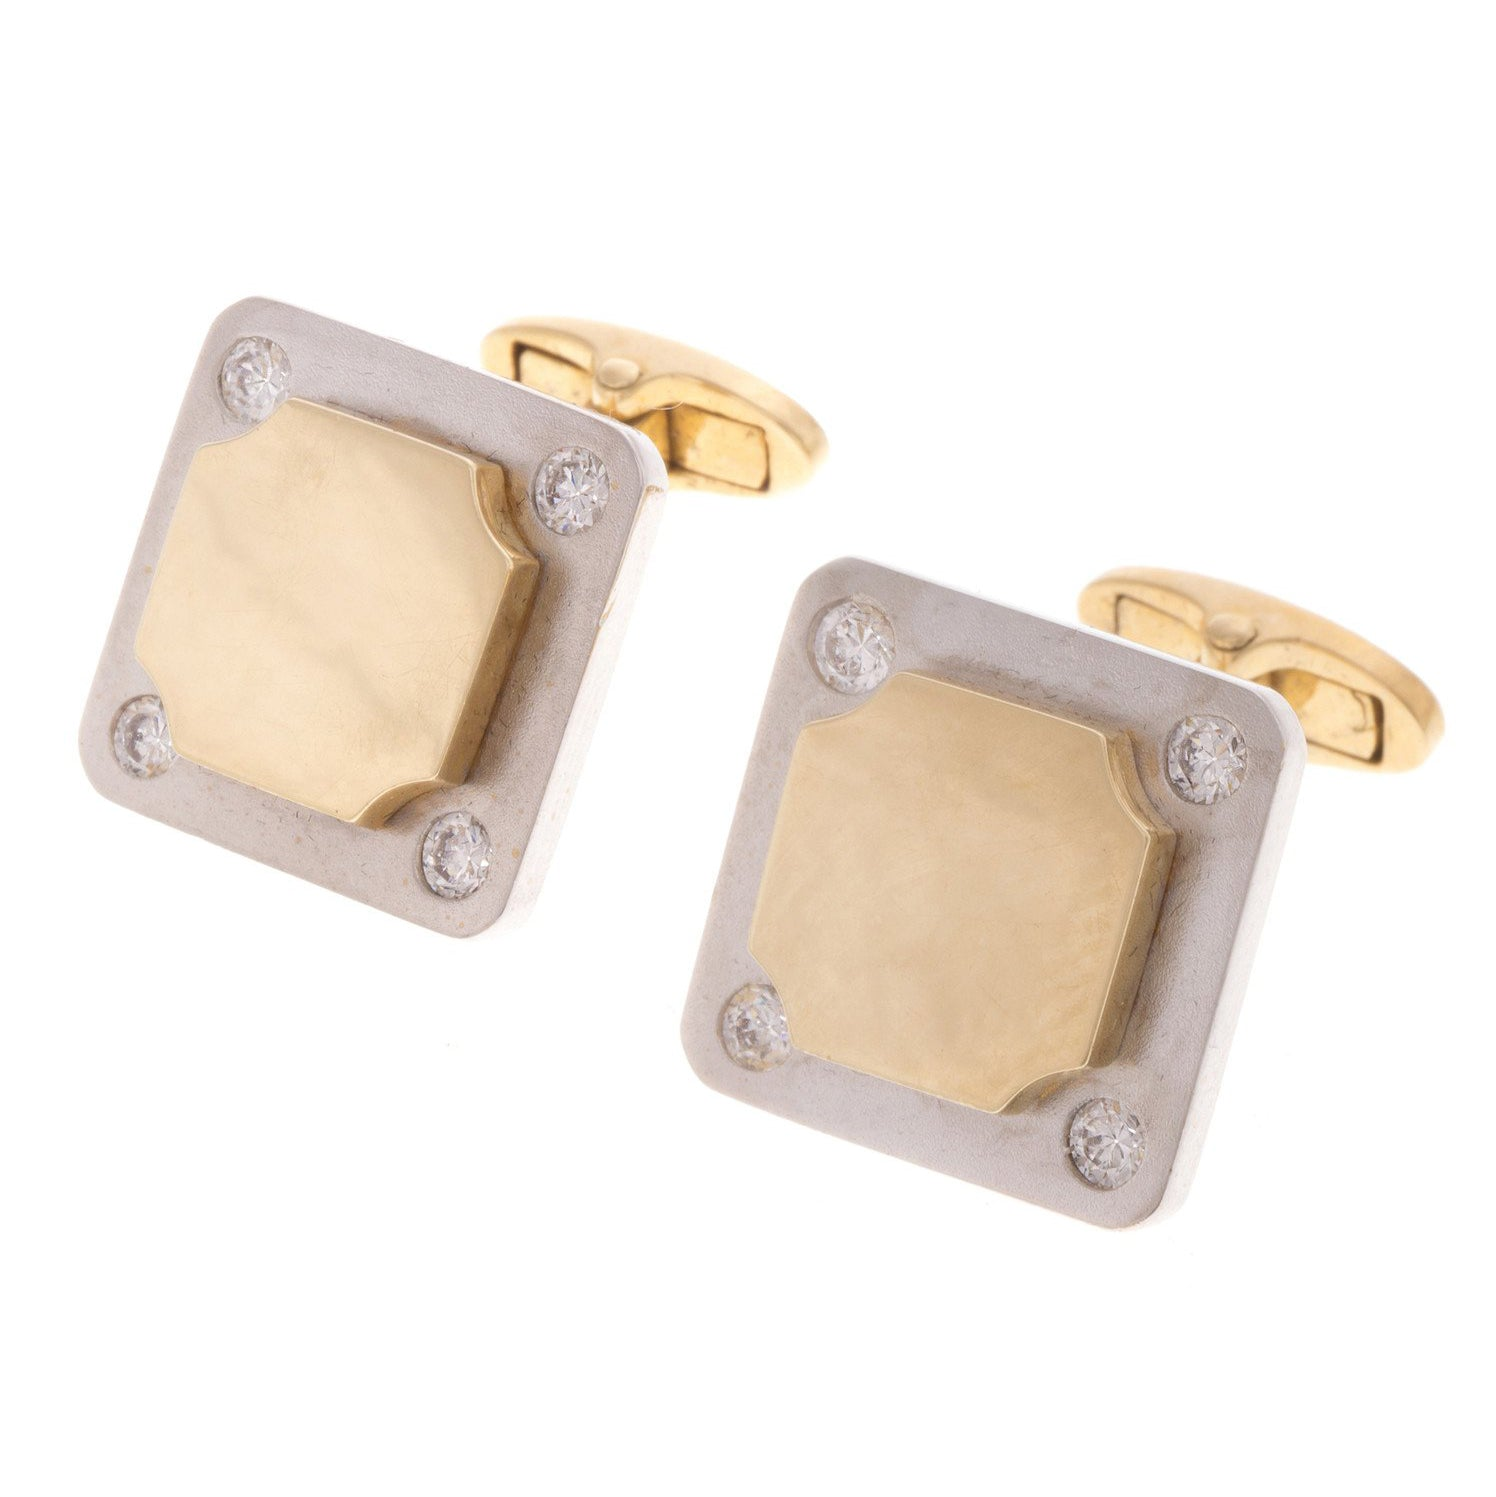 18ct Two Tone Gold Men's Cufflinks set with Cubic Zirconias (G5857), Minar Jewellers - 2